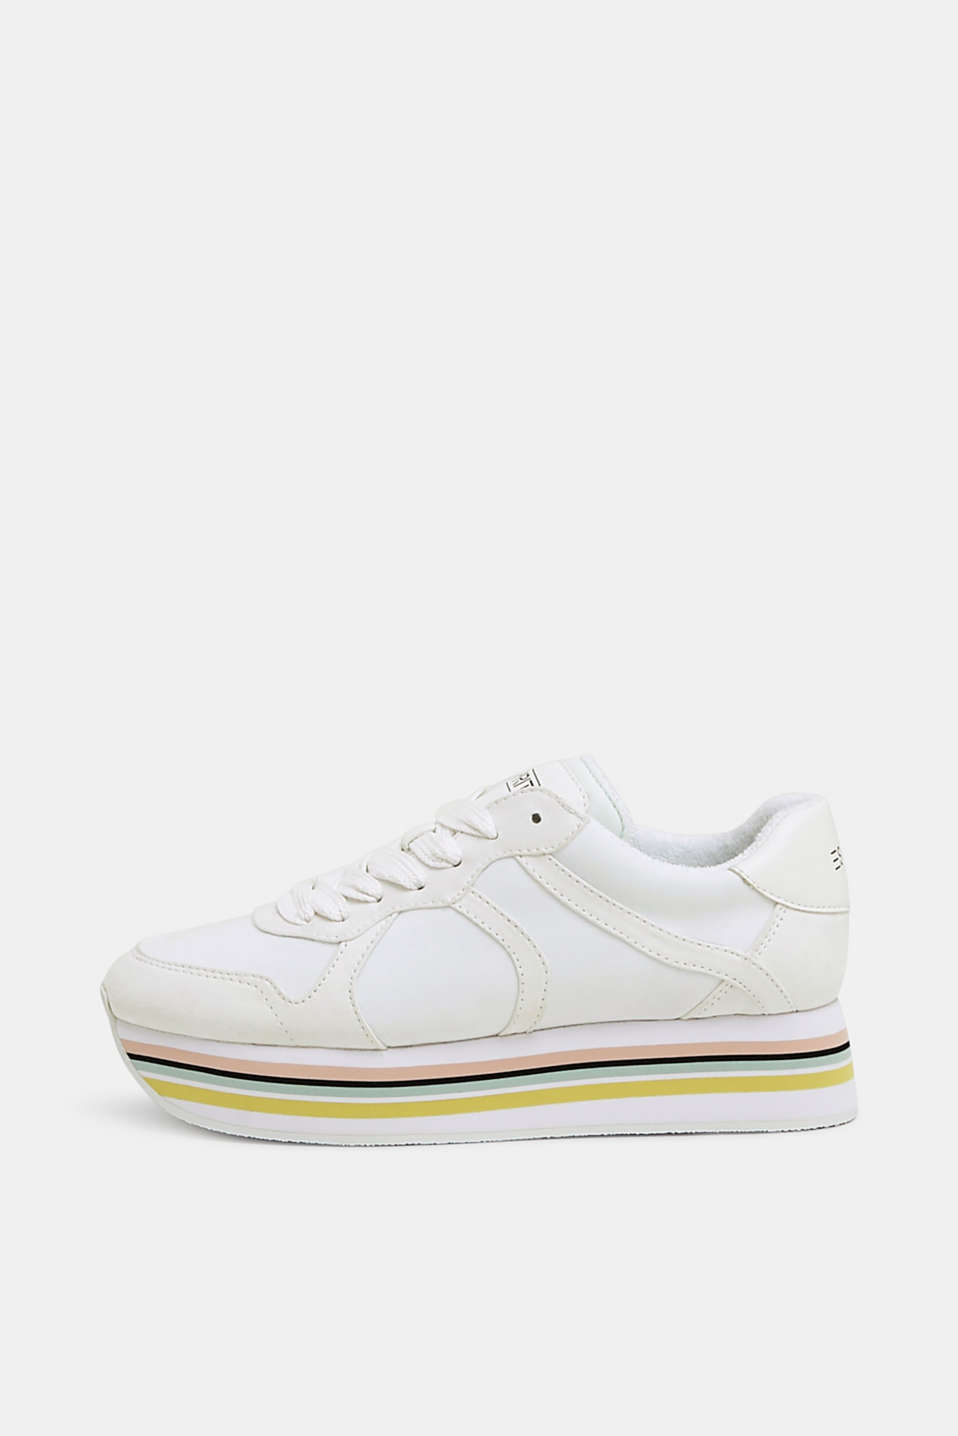 Esprit - Plateausneakers i materialemiks